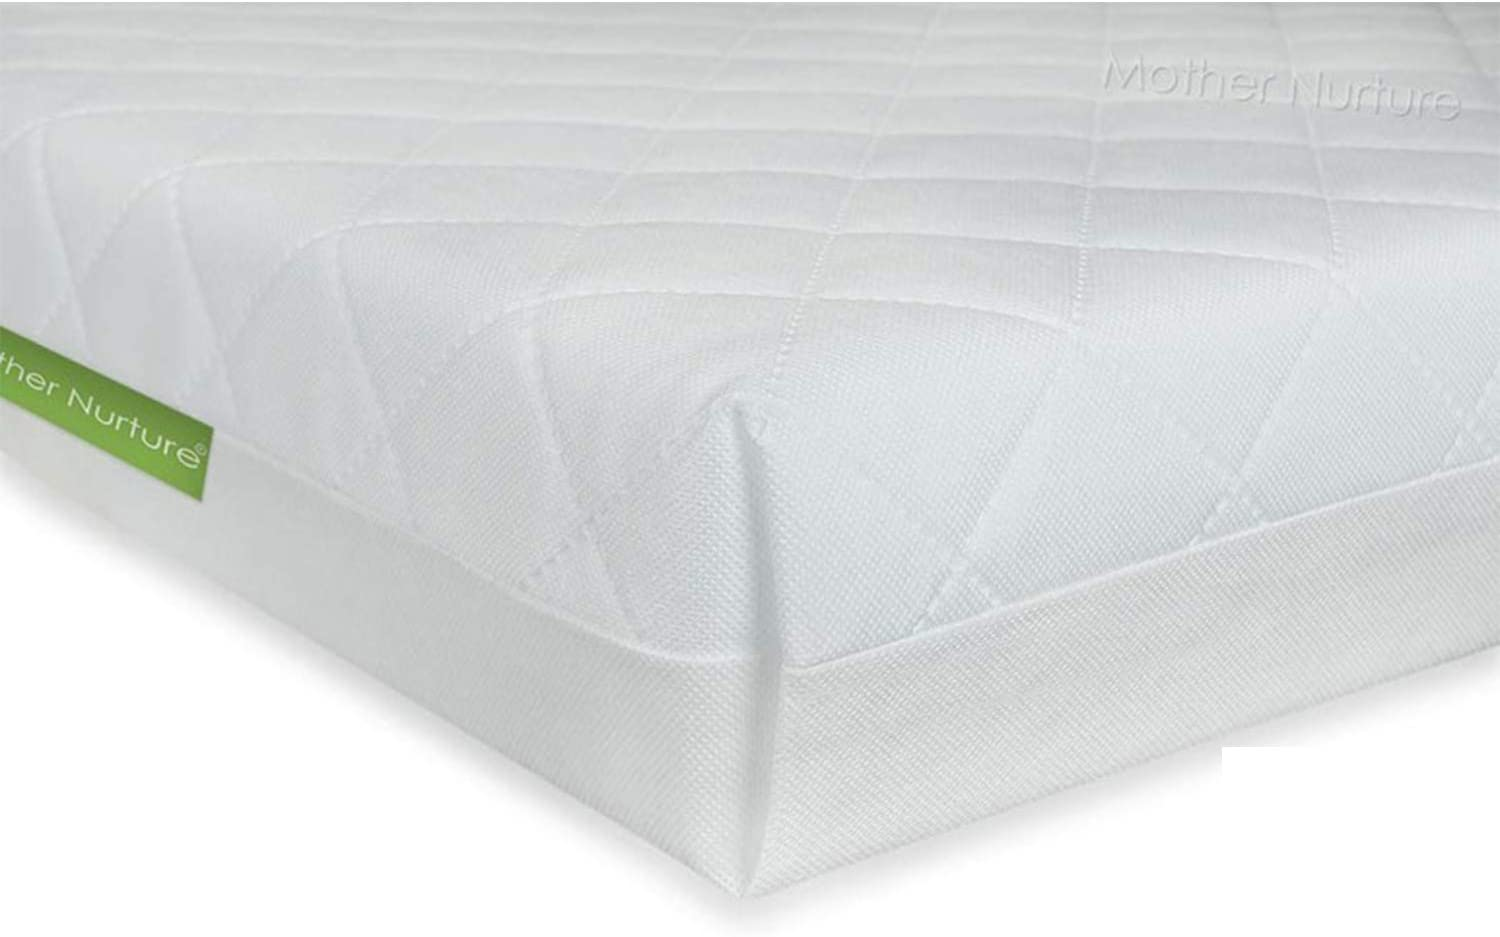 MOTHER NURTURE Classic Travel Cot Mattress‍.